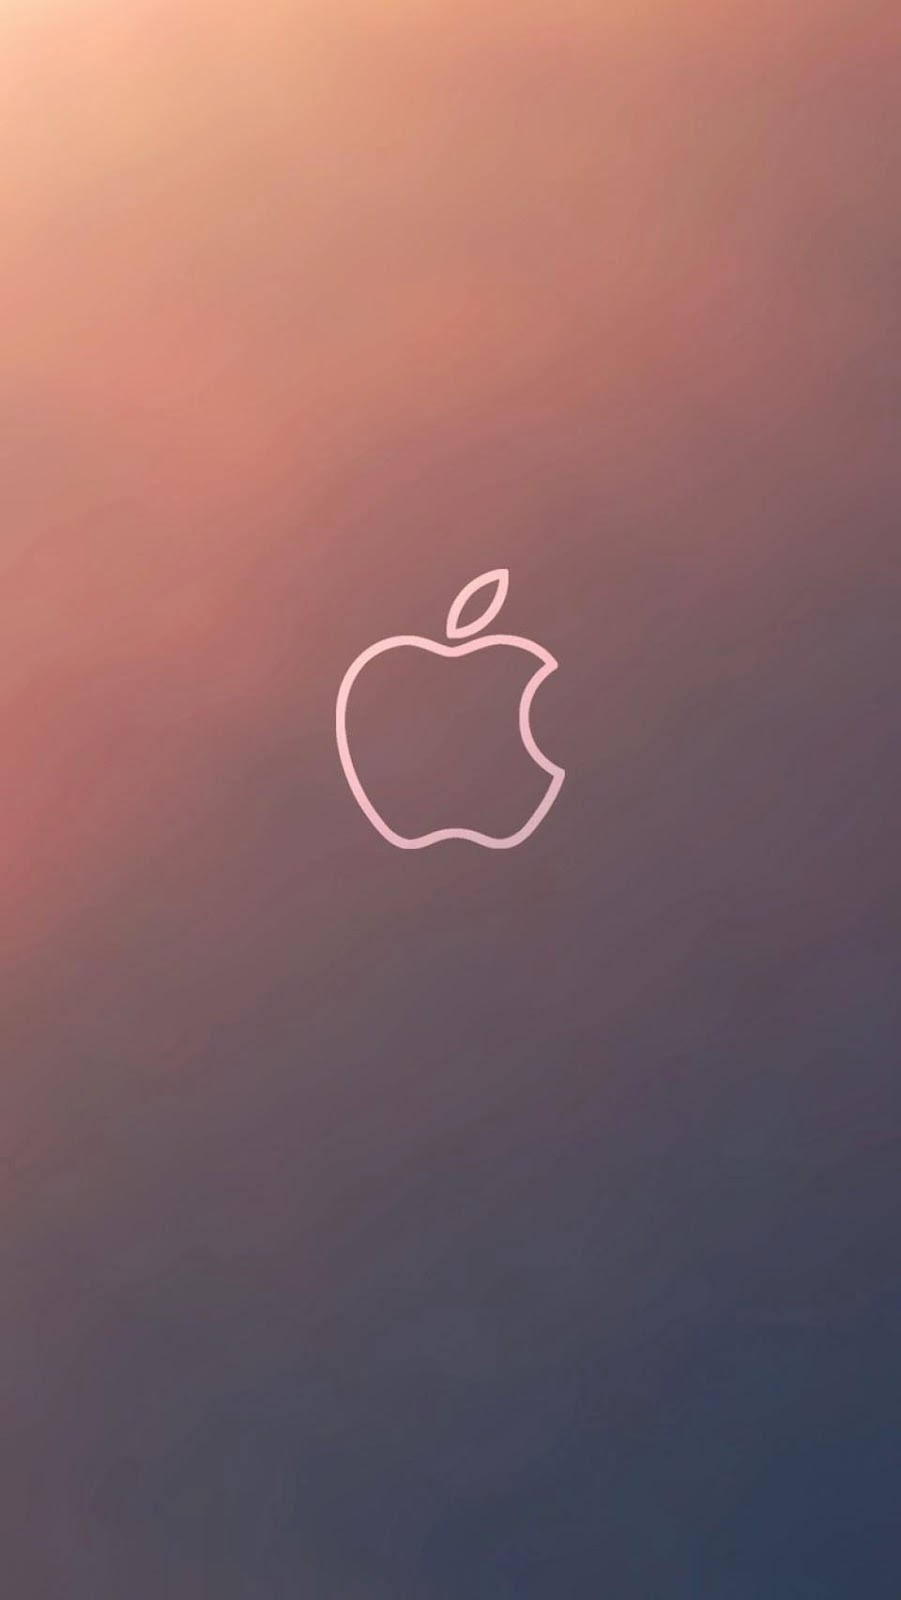 iPhone 6 6 Plus Wallpaper   Apple Logo   Covers Heat 901x1600